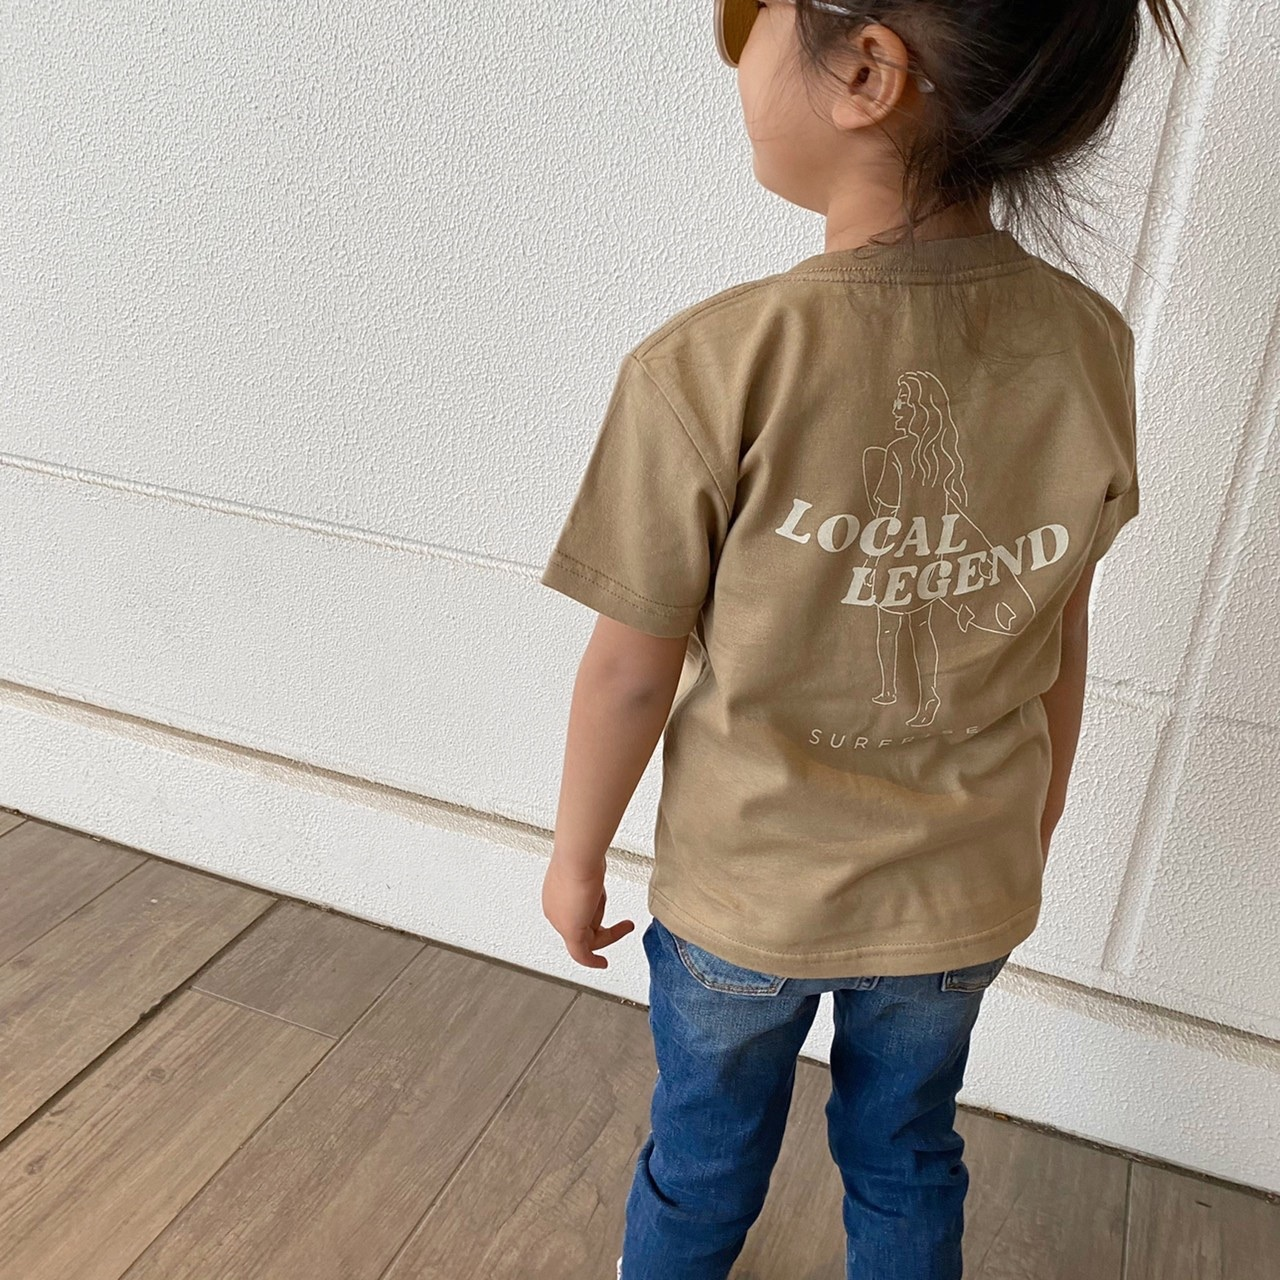 ★Kids★ LOCAL LEGEND Tee - Sand khaki